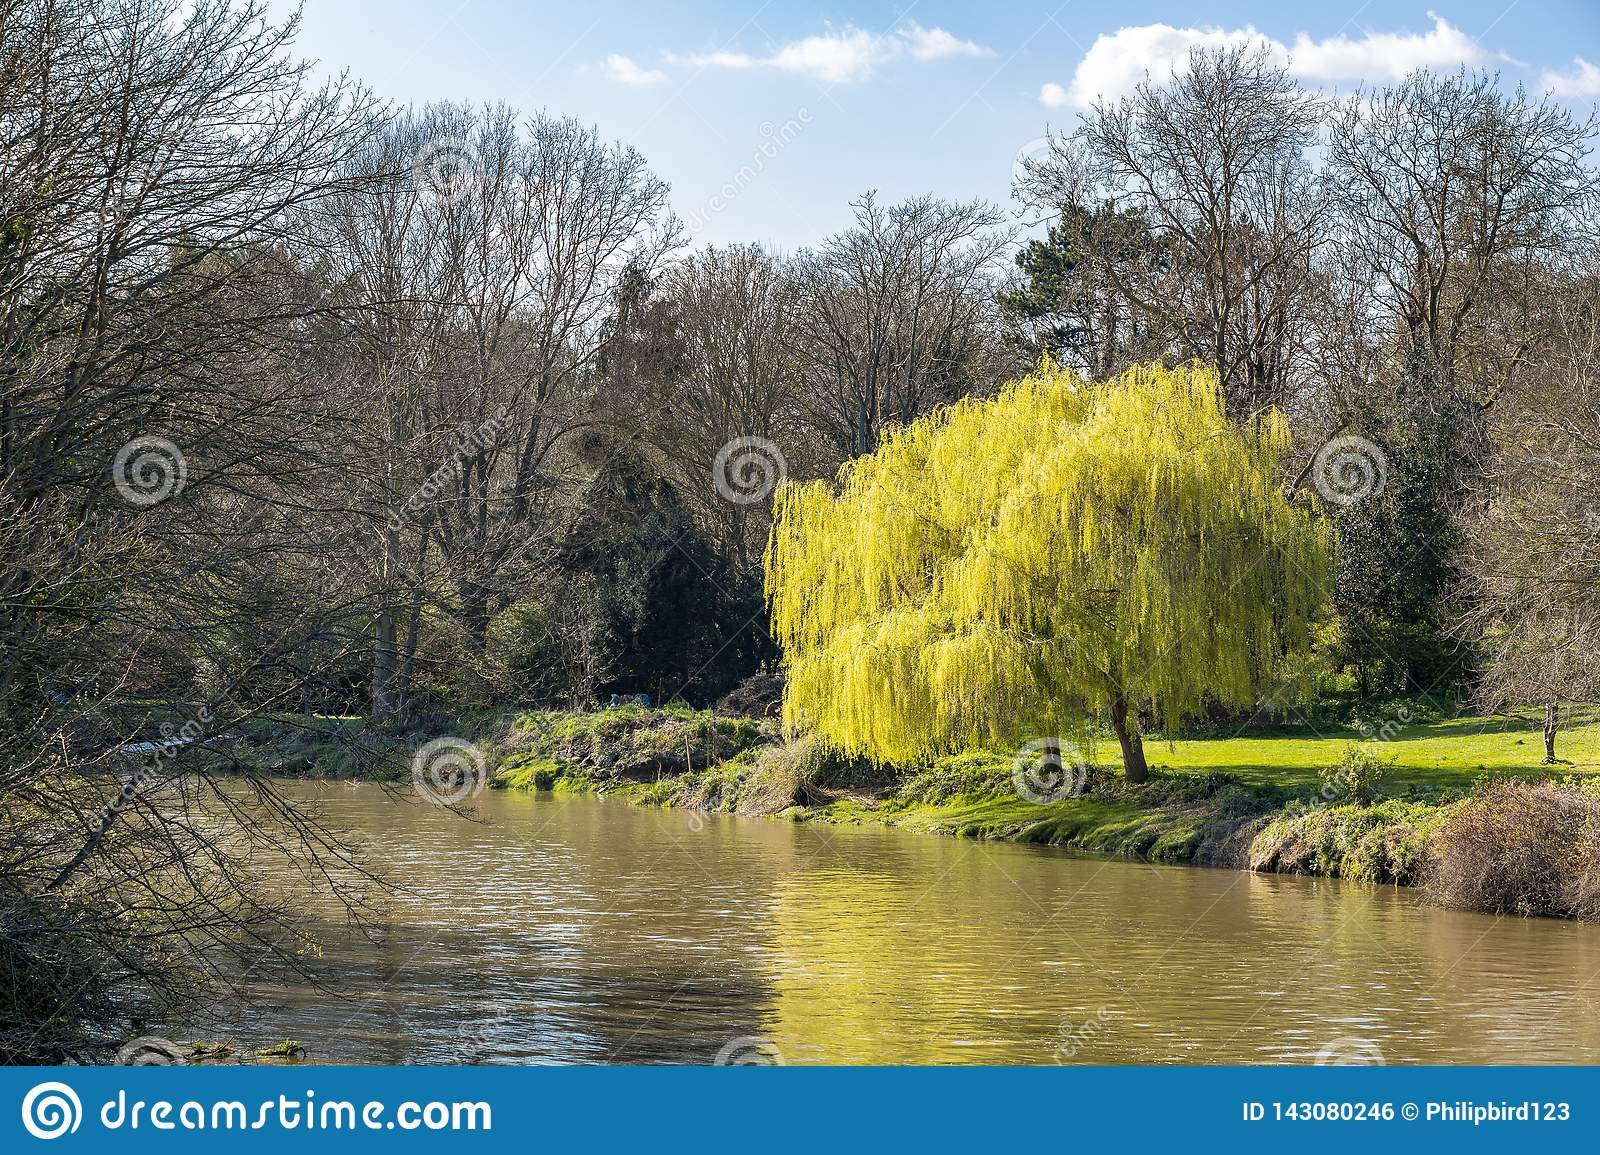 Two weeping willow trees bursting into leaf in springtime on the banks of the River Stour in Aylesford